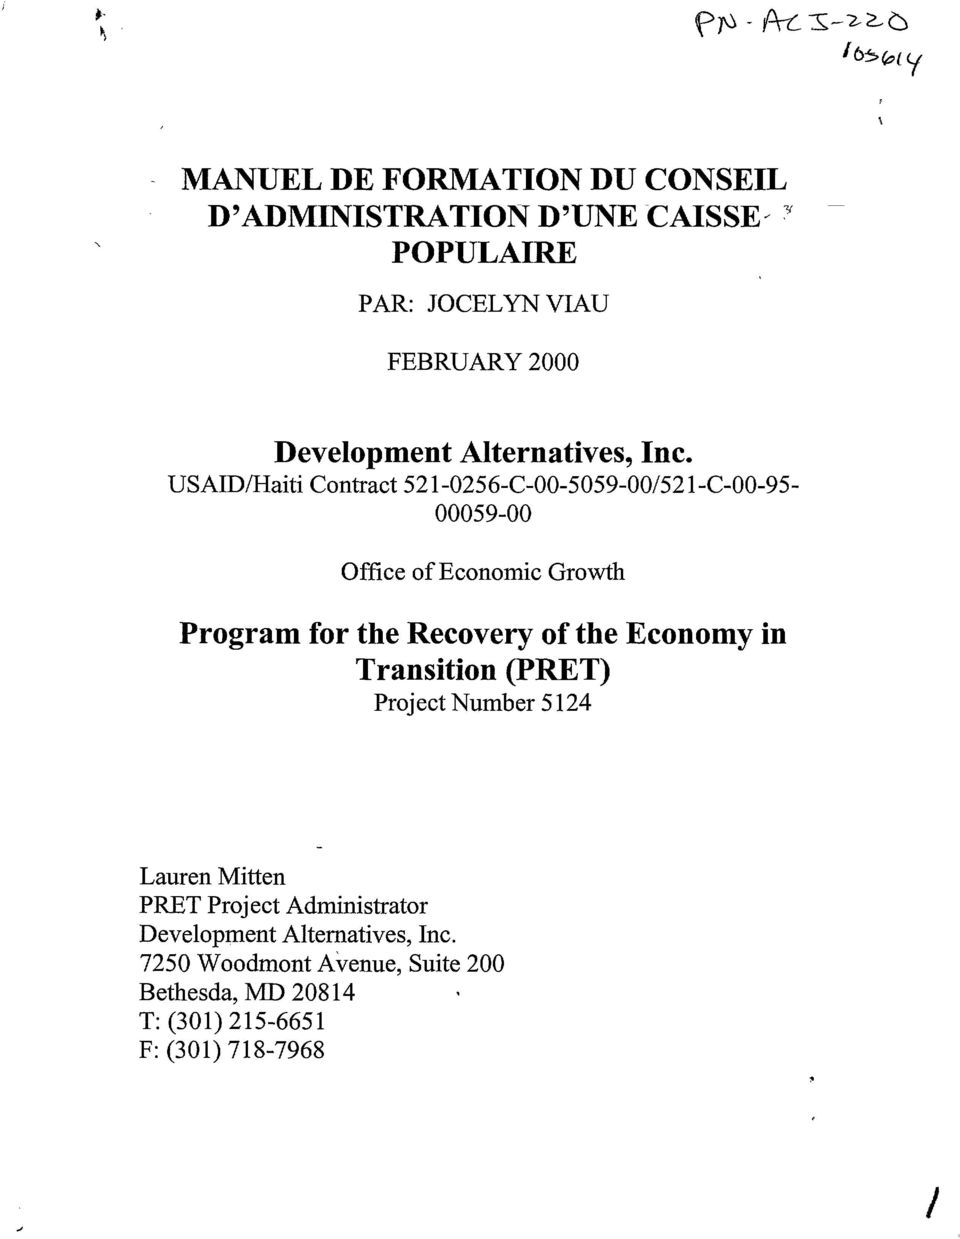 USAIDIHaiti Contract 521-0256-C-00-5059-00/521-C-00-95 00059-00 Office ofeconomie Growth Program for the Reeovery of